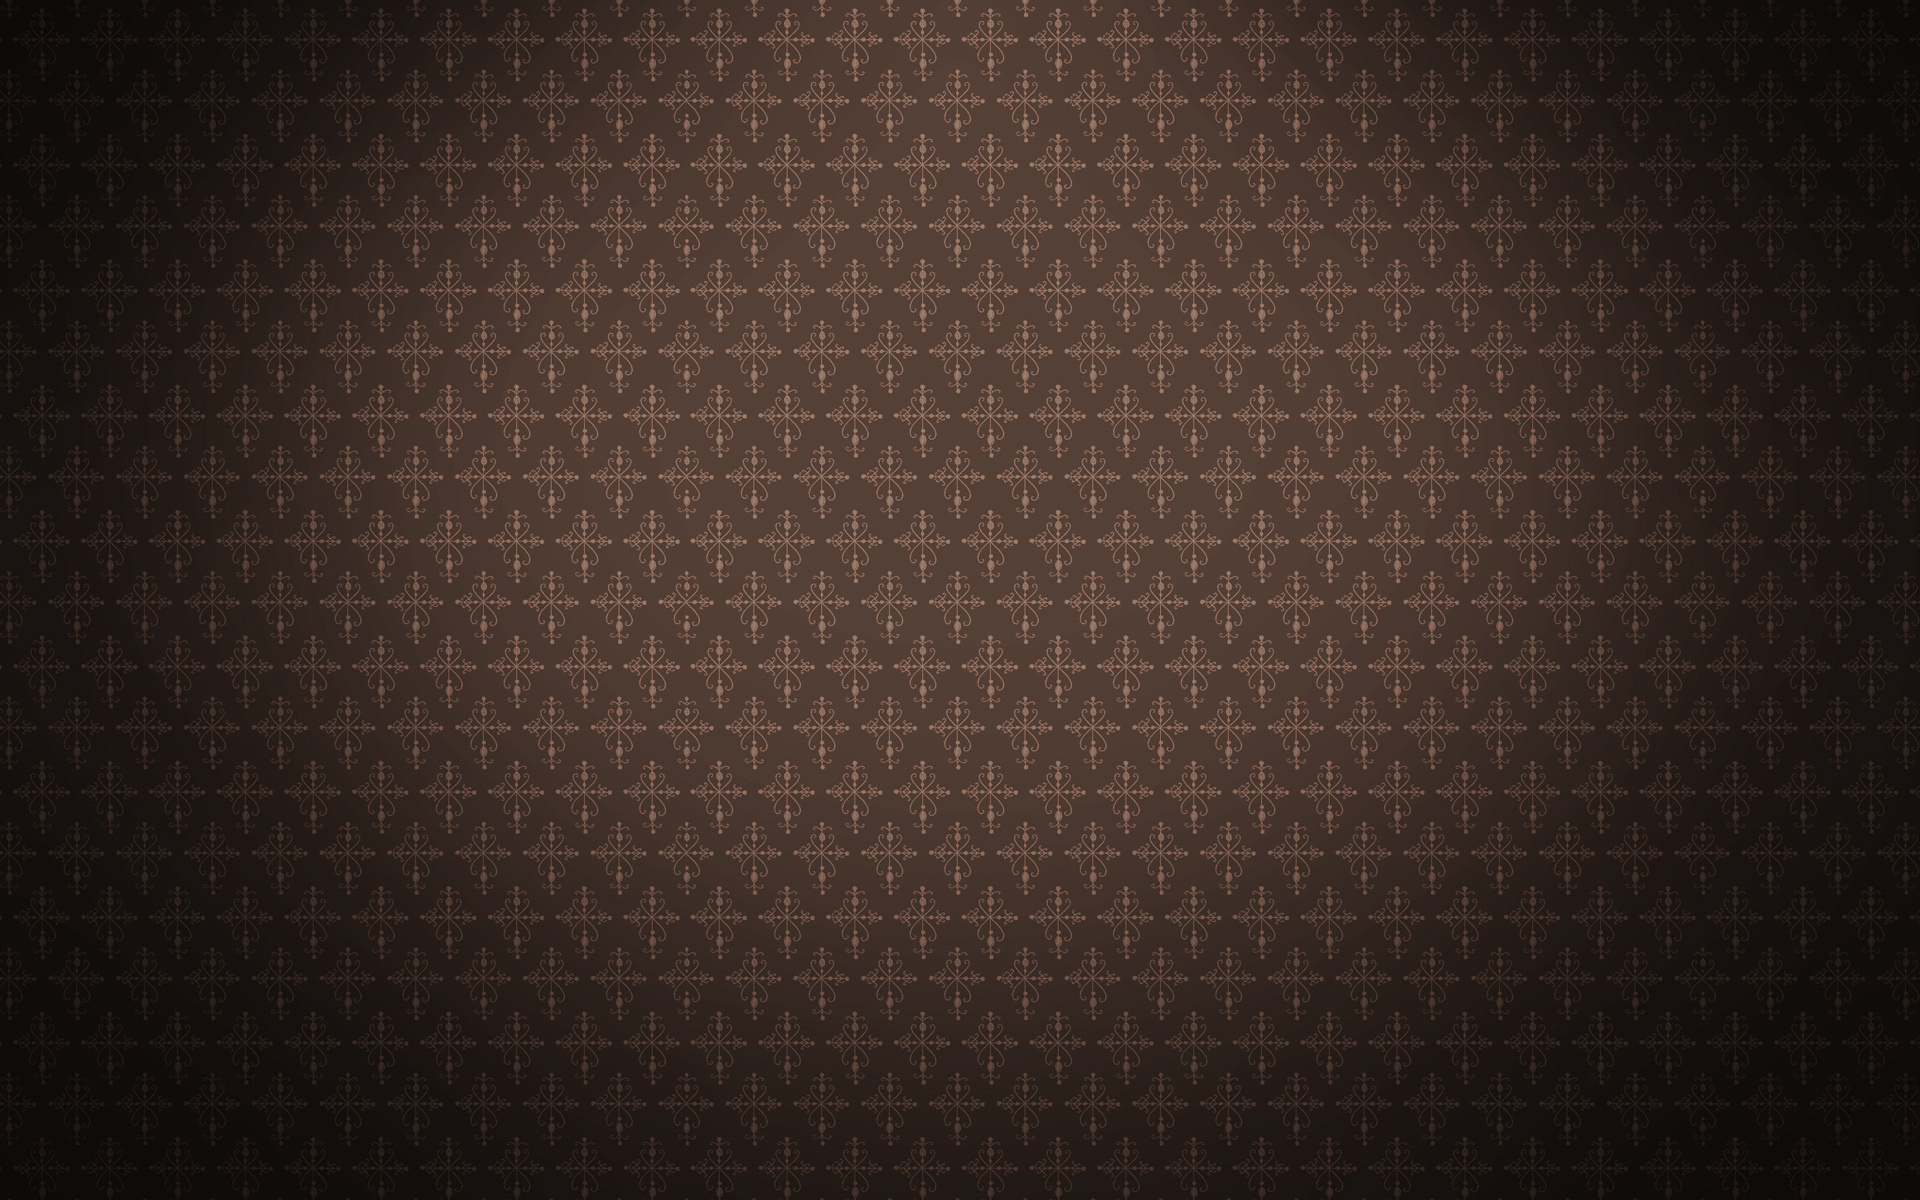 template , texture, background for website, ornament texture, download photo, background